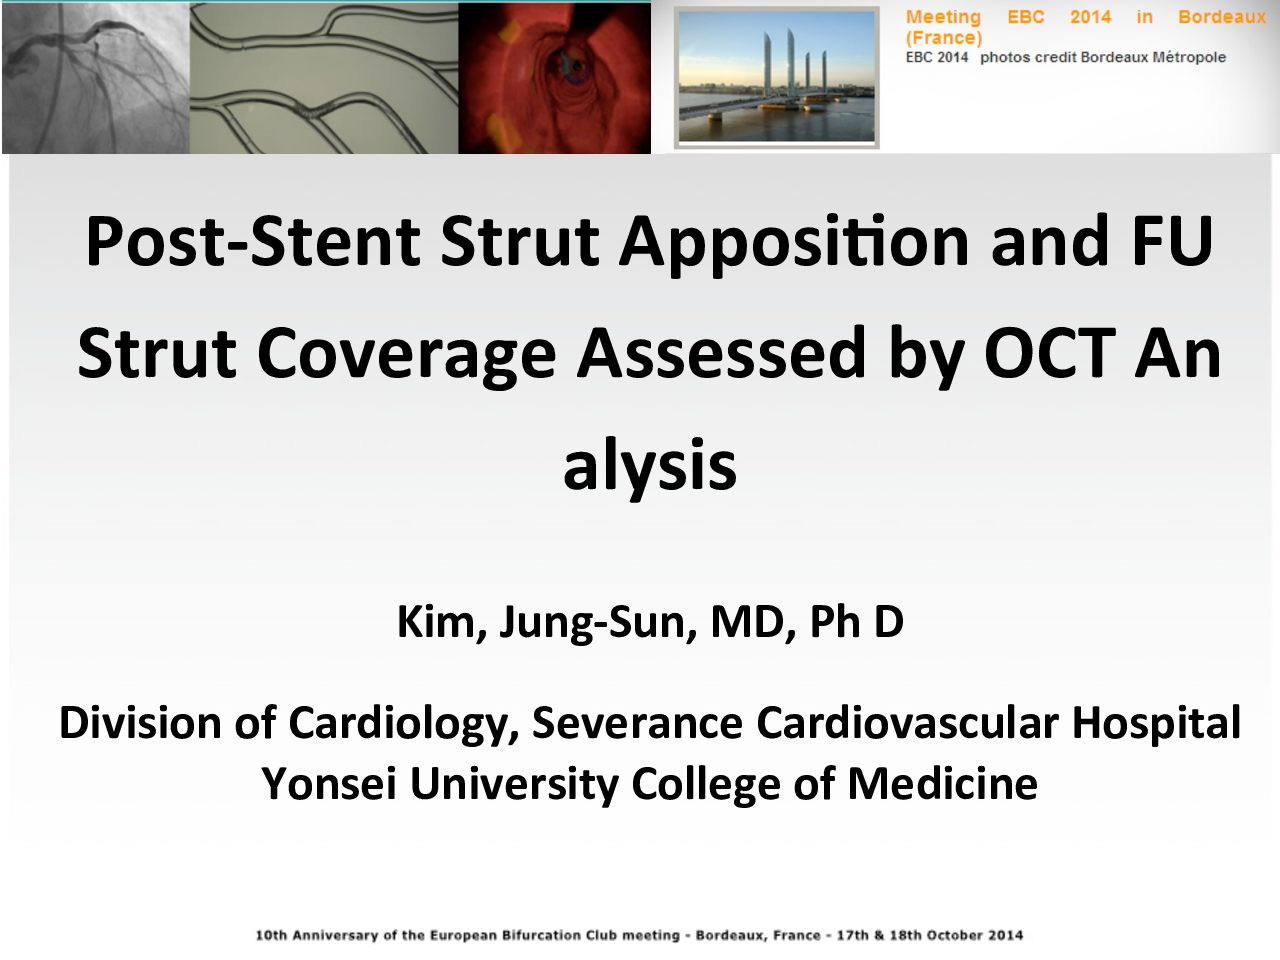 POst stent strut apposition and FU Strut Coverage Assessed by OCT Analysis